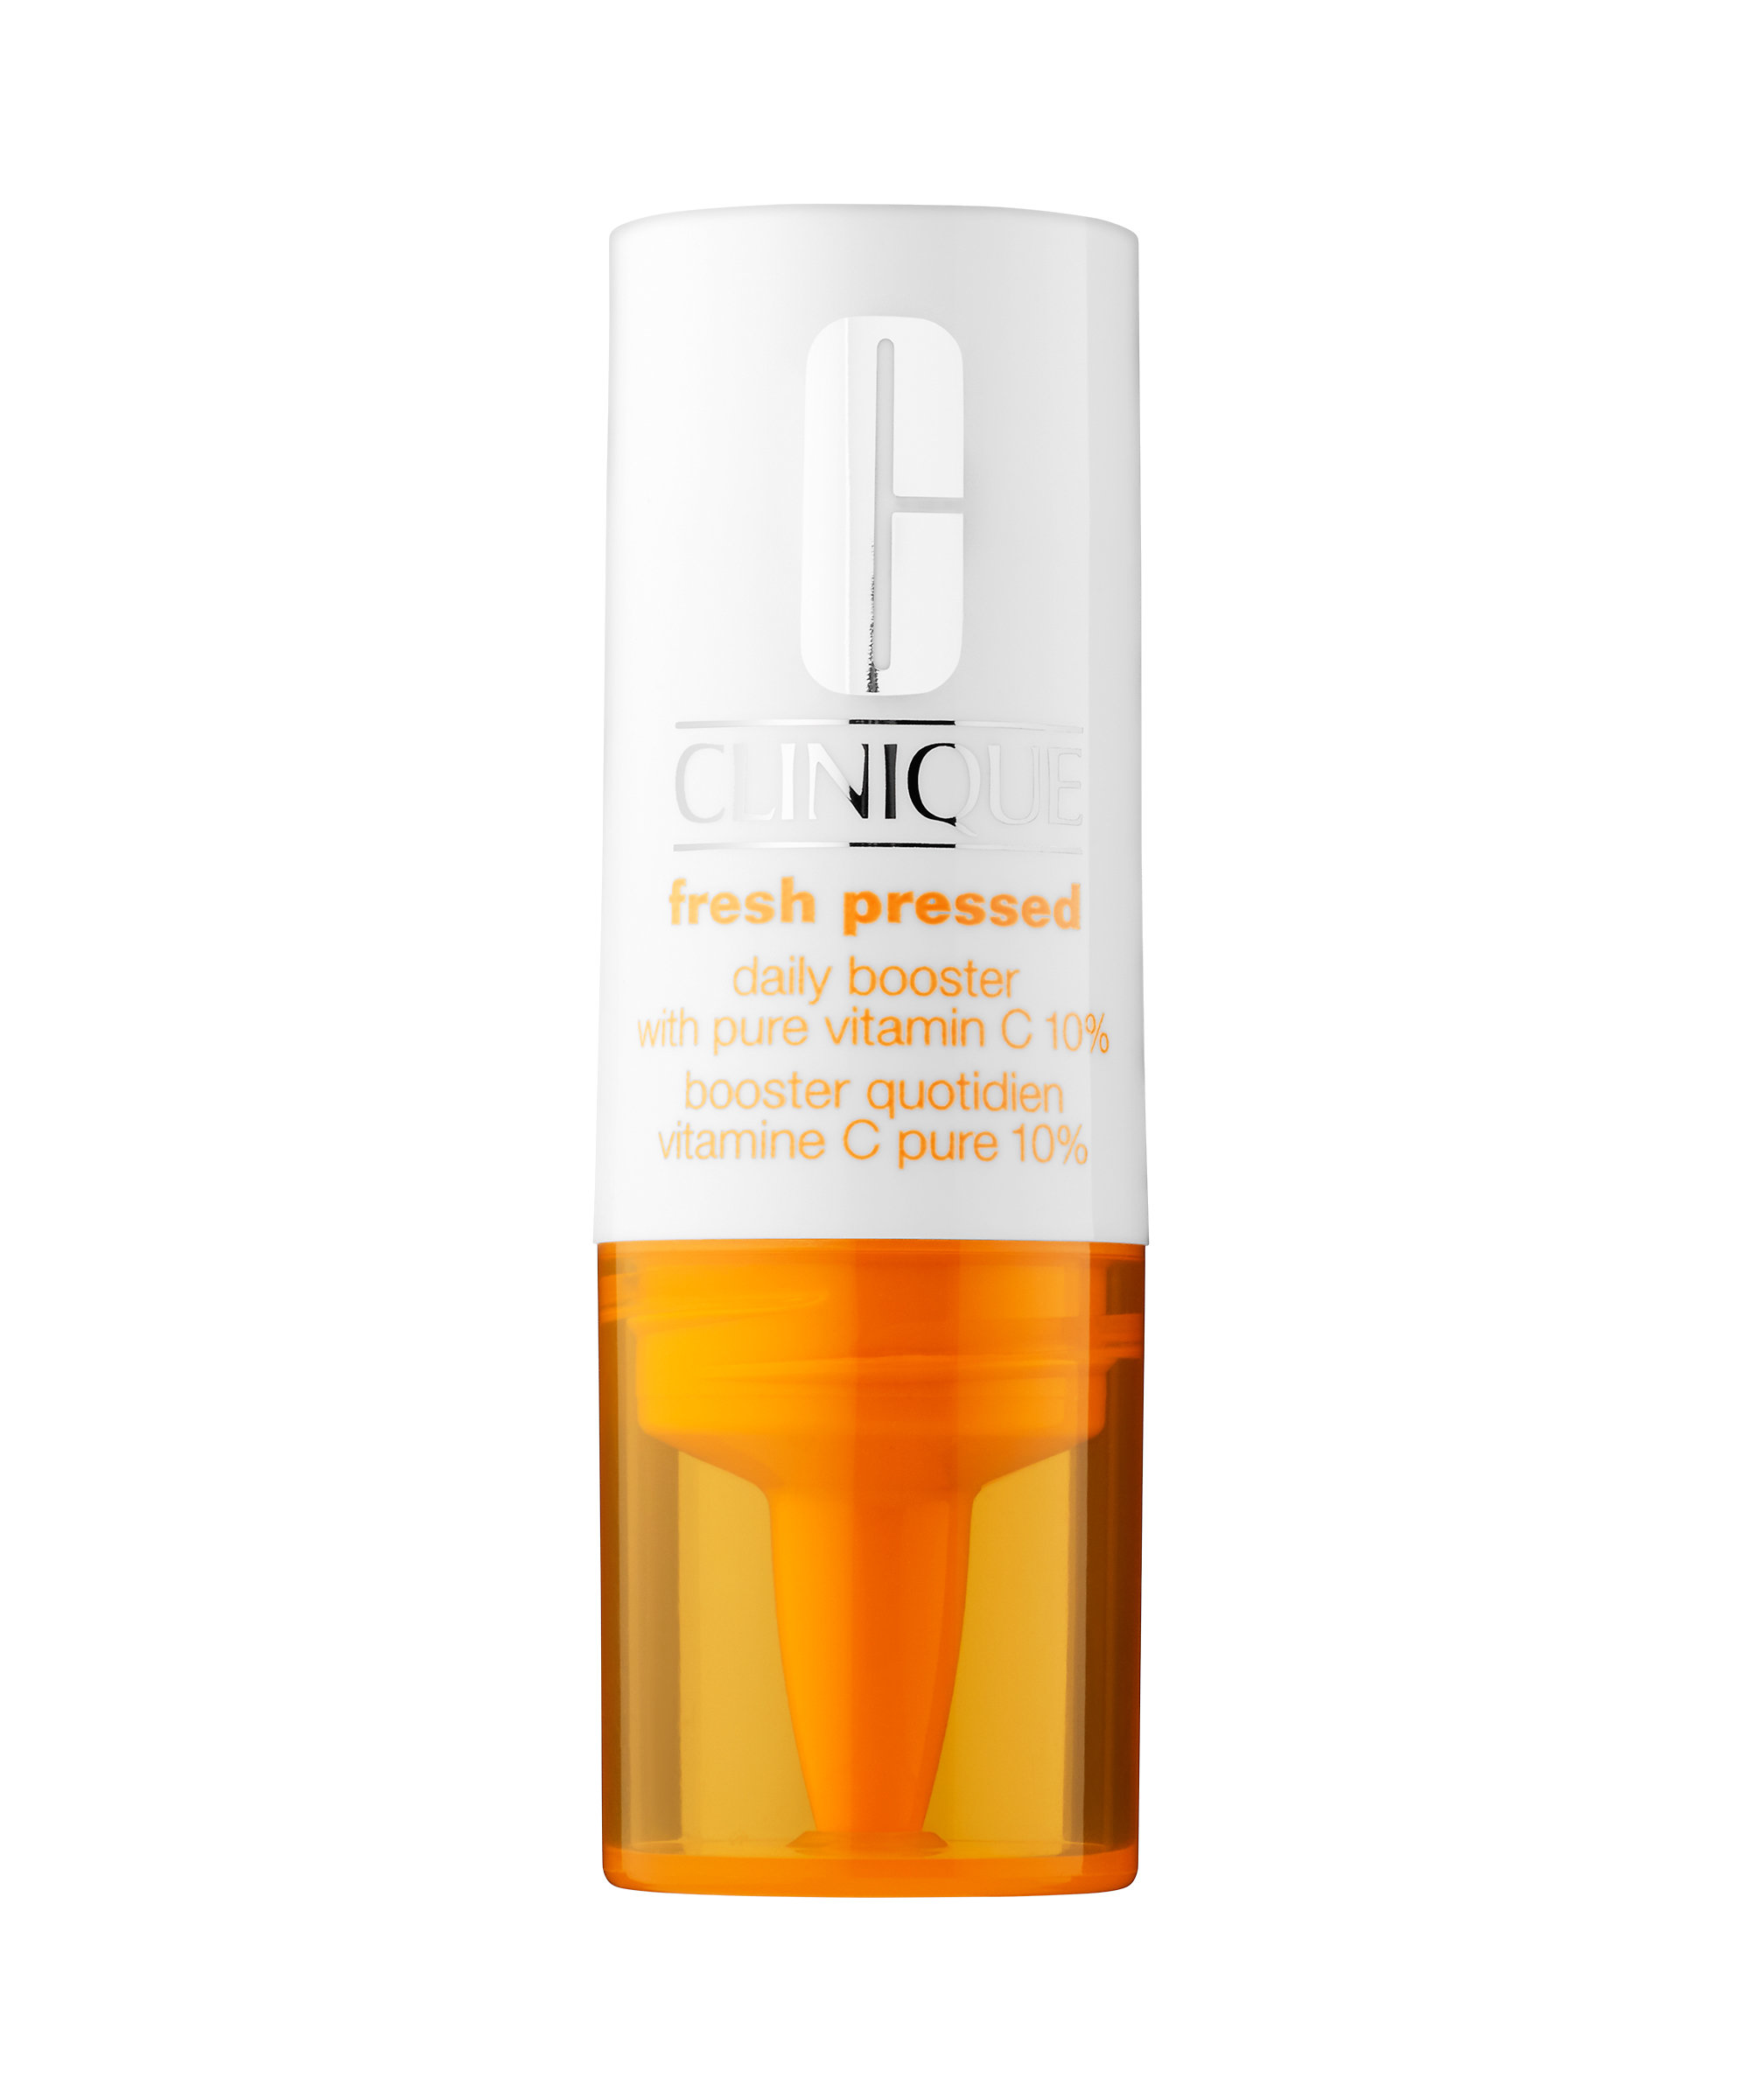 Clinique Fresh Pressed Daily Booster with Pure Vitamin C 10% Serum